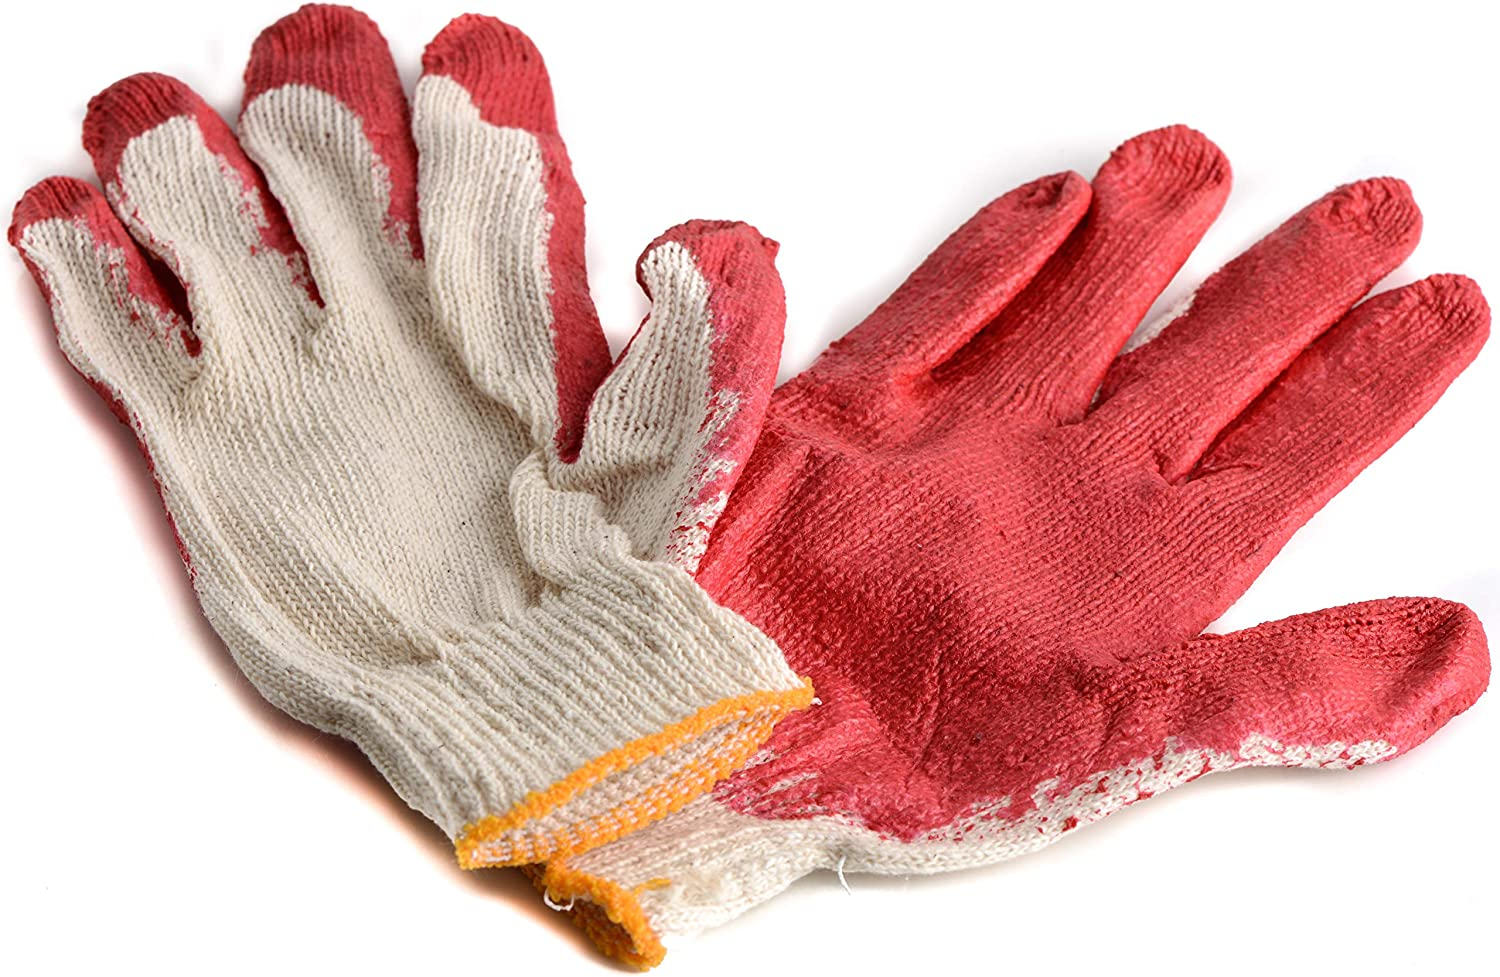 250 Pairs - Red Max 65% OFF Latex Coated Regular discount Work by EcoQ Cotton MEDIUM Gloves